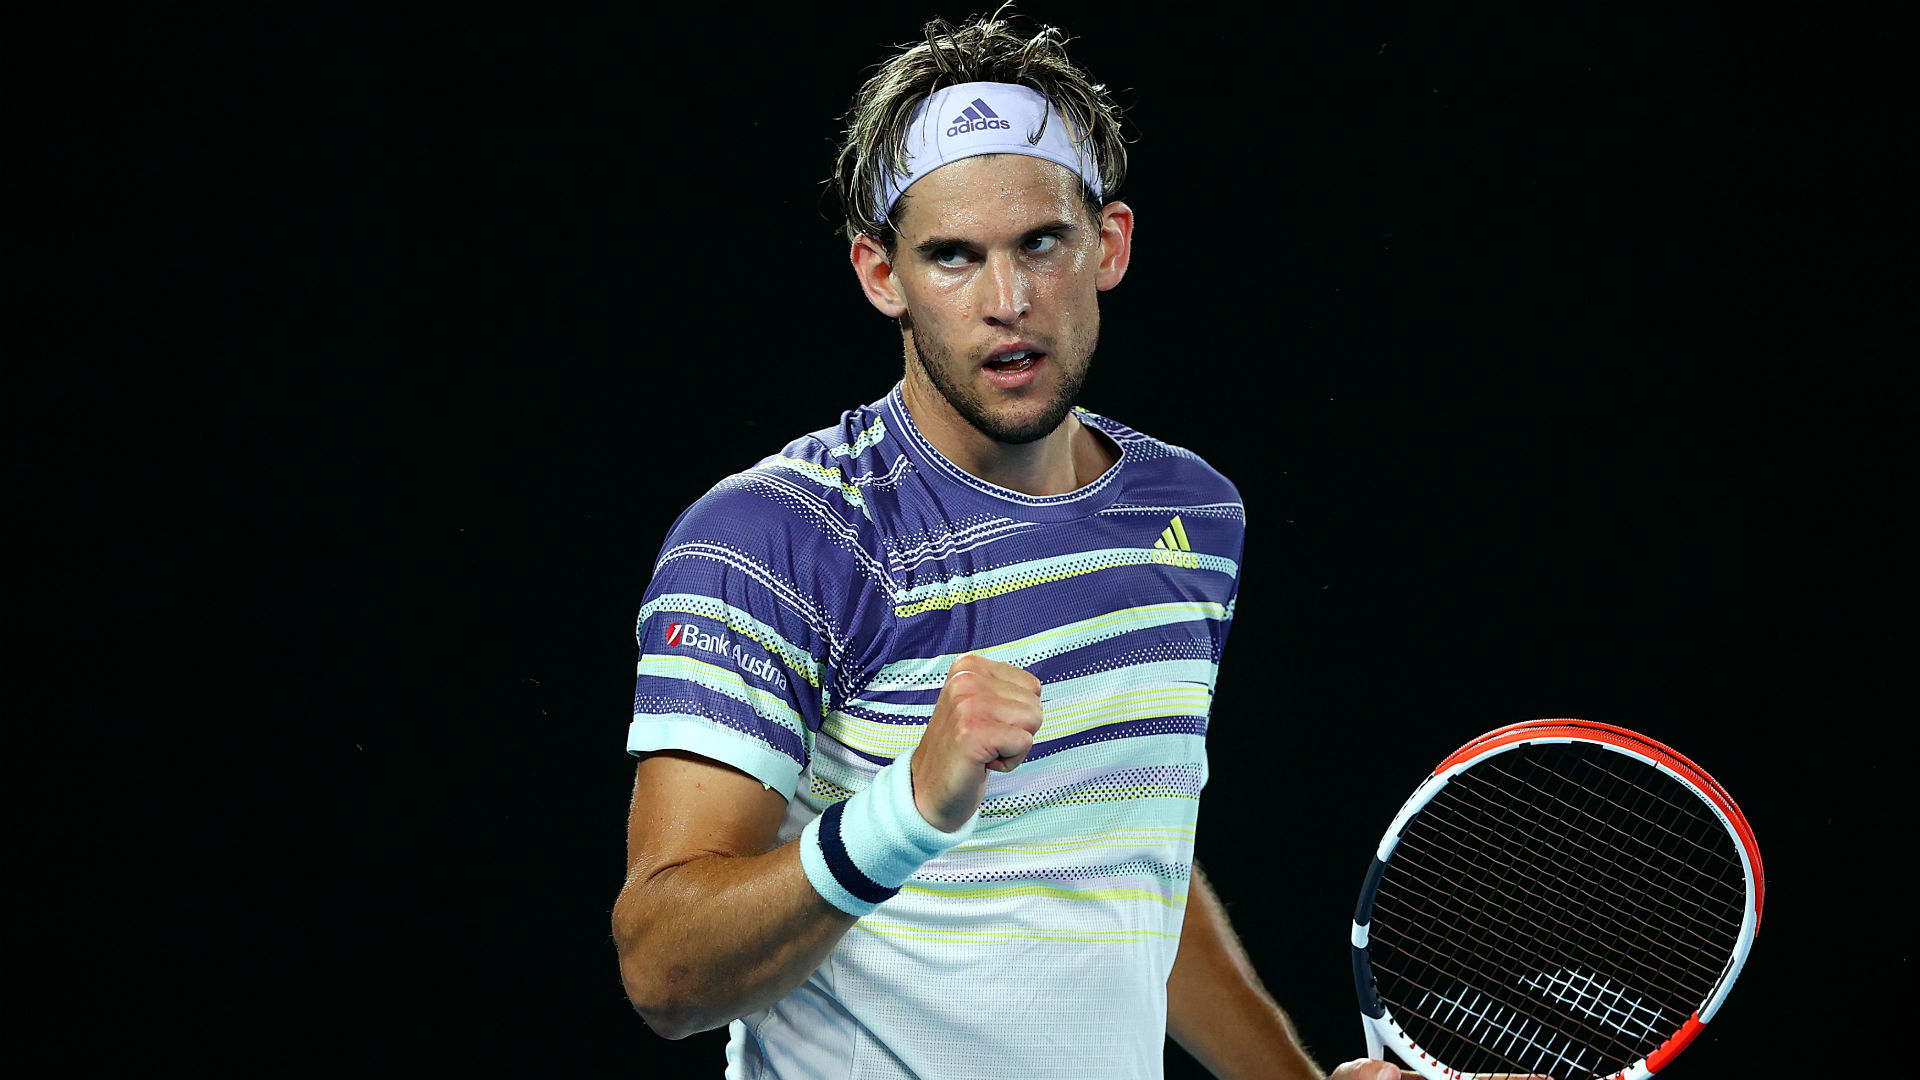 Australian Open 2020: Majestic Thiem dumps out Nadal to reach semi-finals